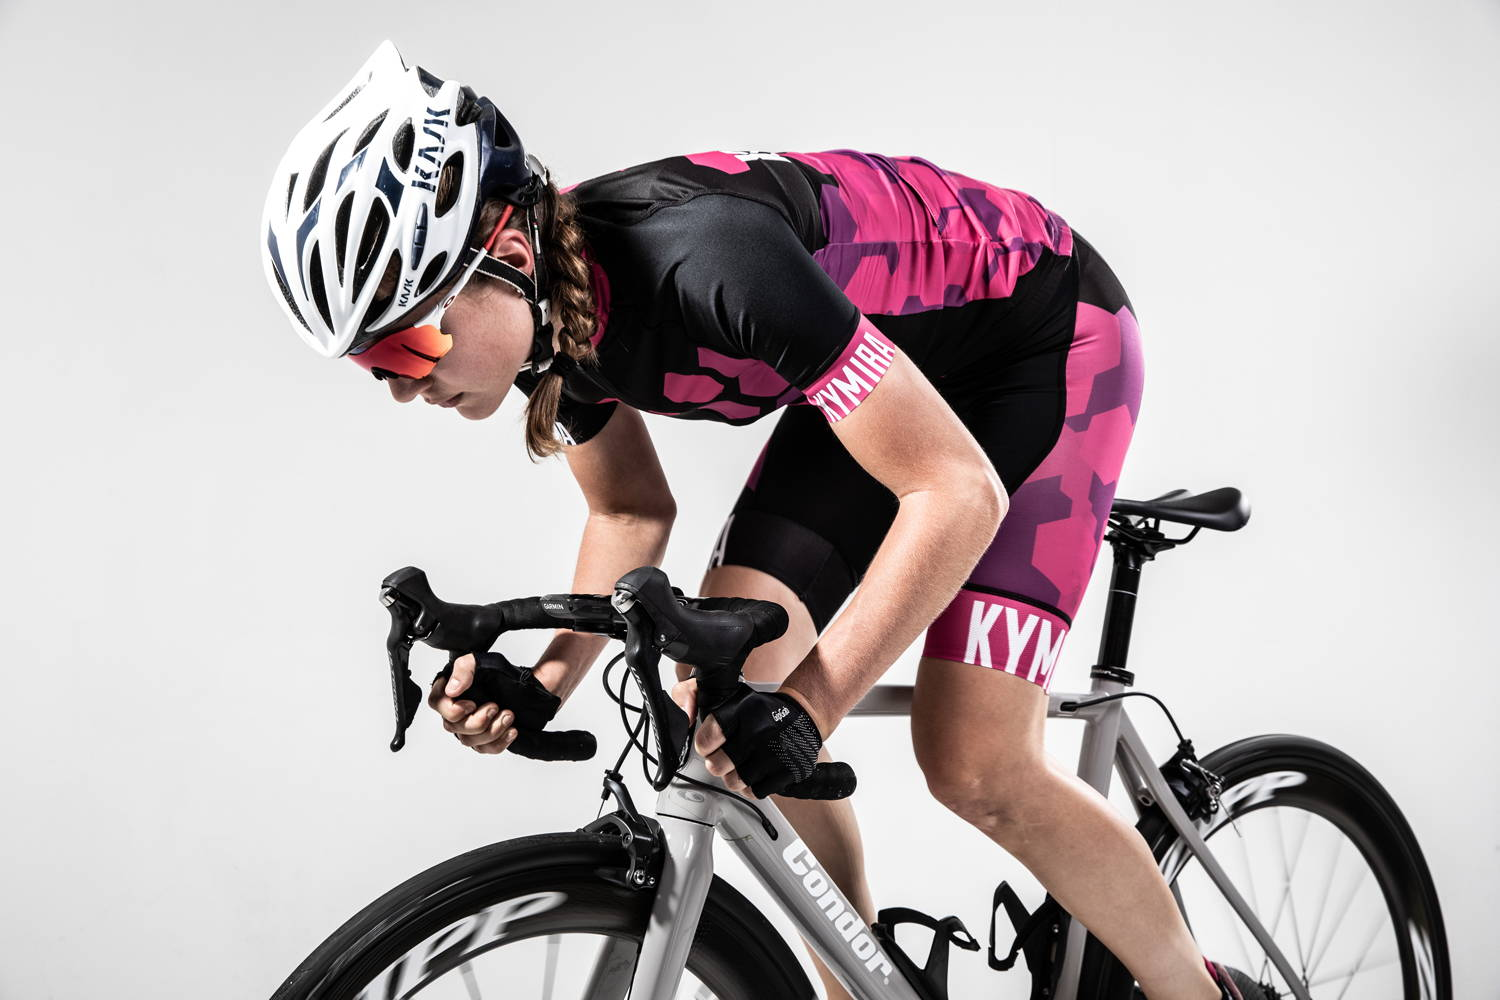 Female Cyclist Wearing KYMIRA Sport Cyclewear